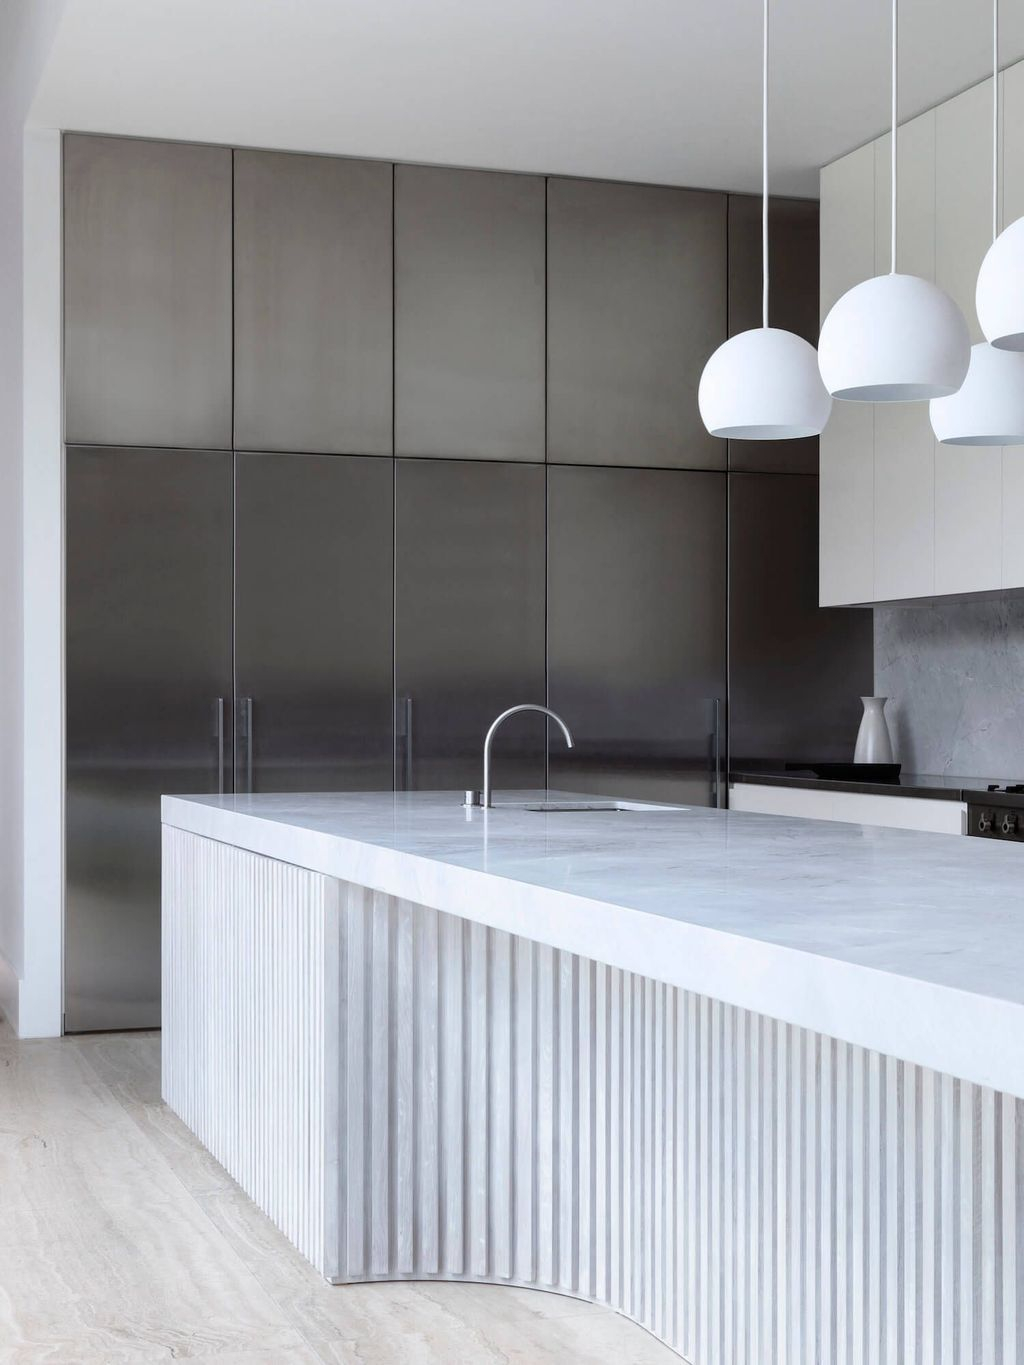 Elegant Minimalist Kitchen Design Ideas For Small Space To Try 11